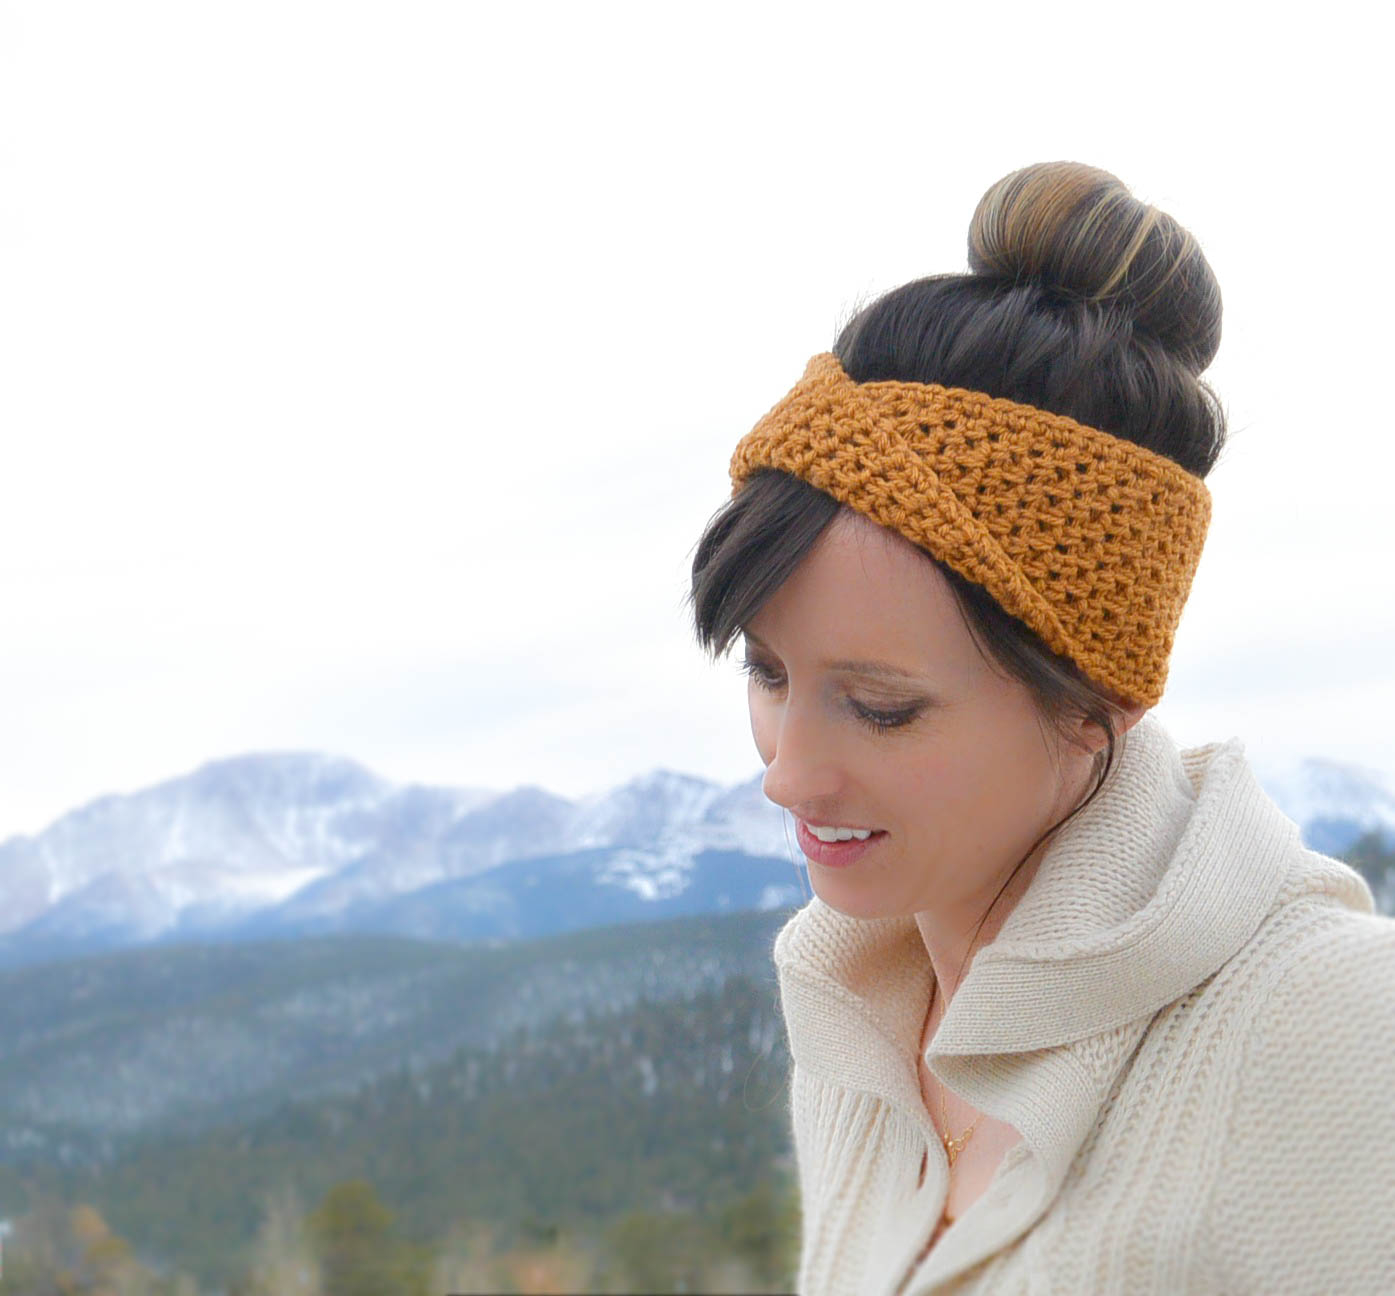 Lovely Headband Crochet Pattern for your hair accesories Golden Fave Twist Headband Free Crochet Pattern Mama In A Stitch